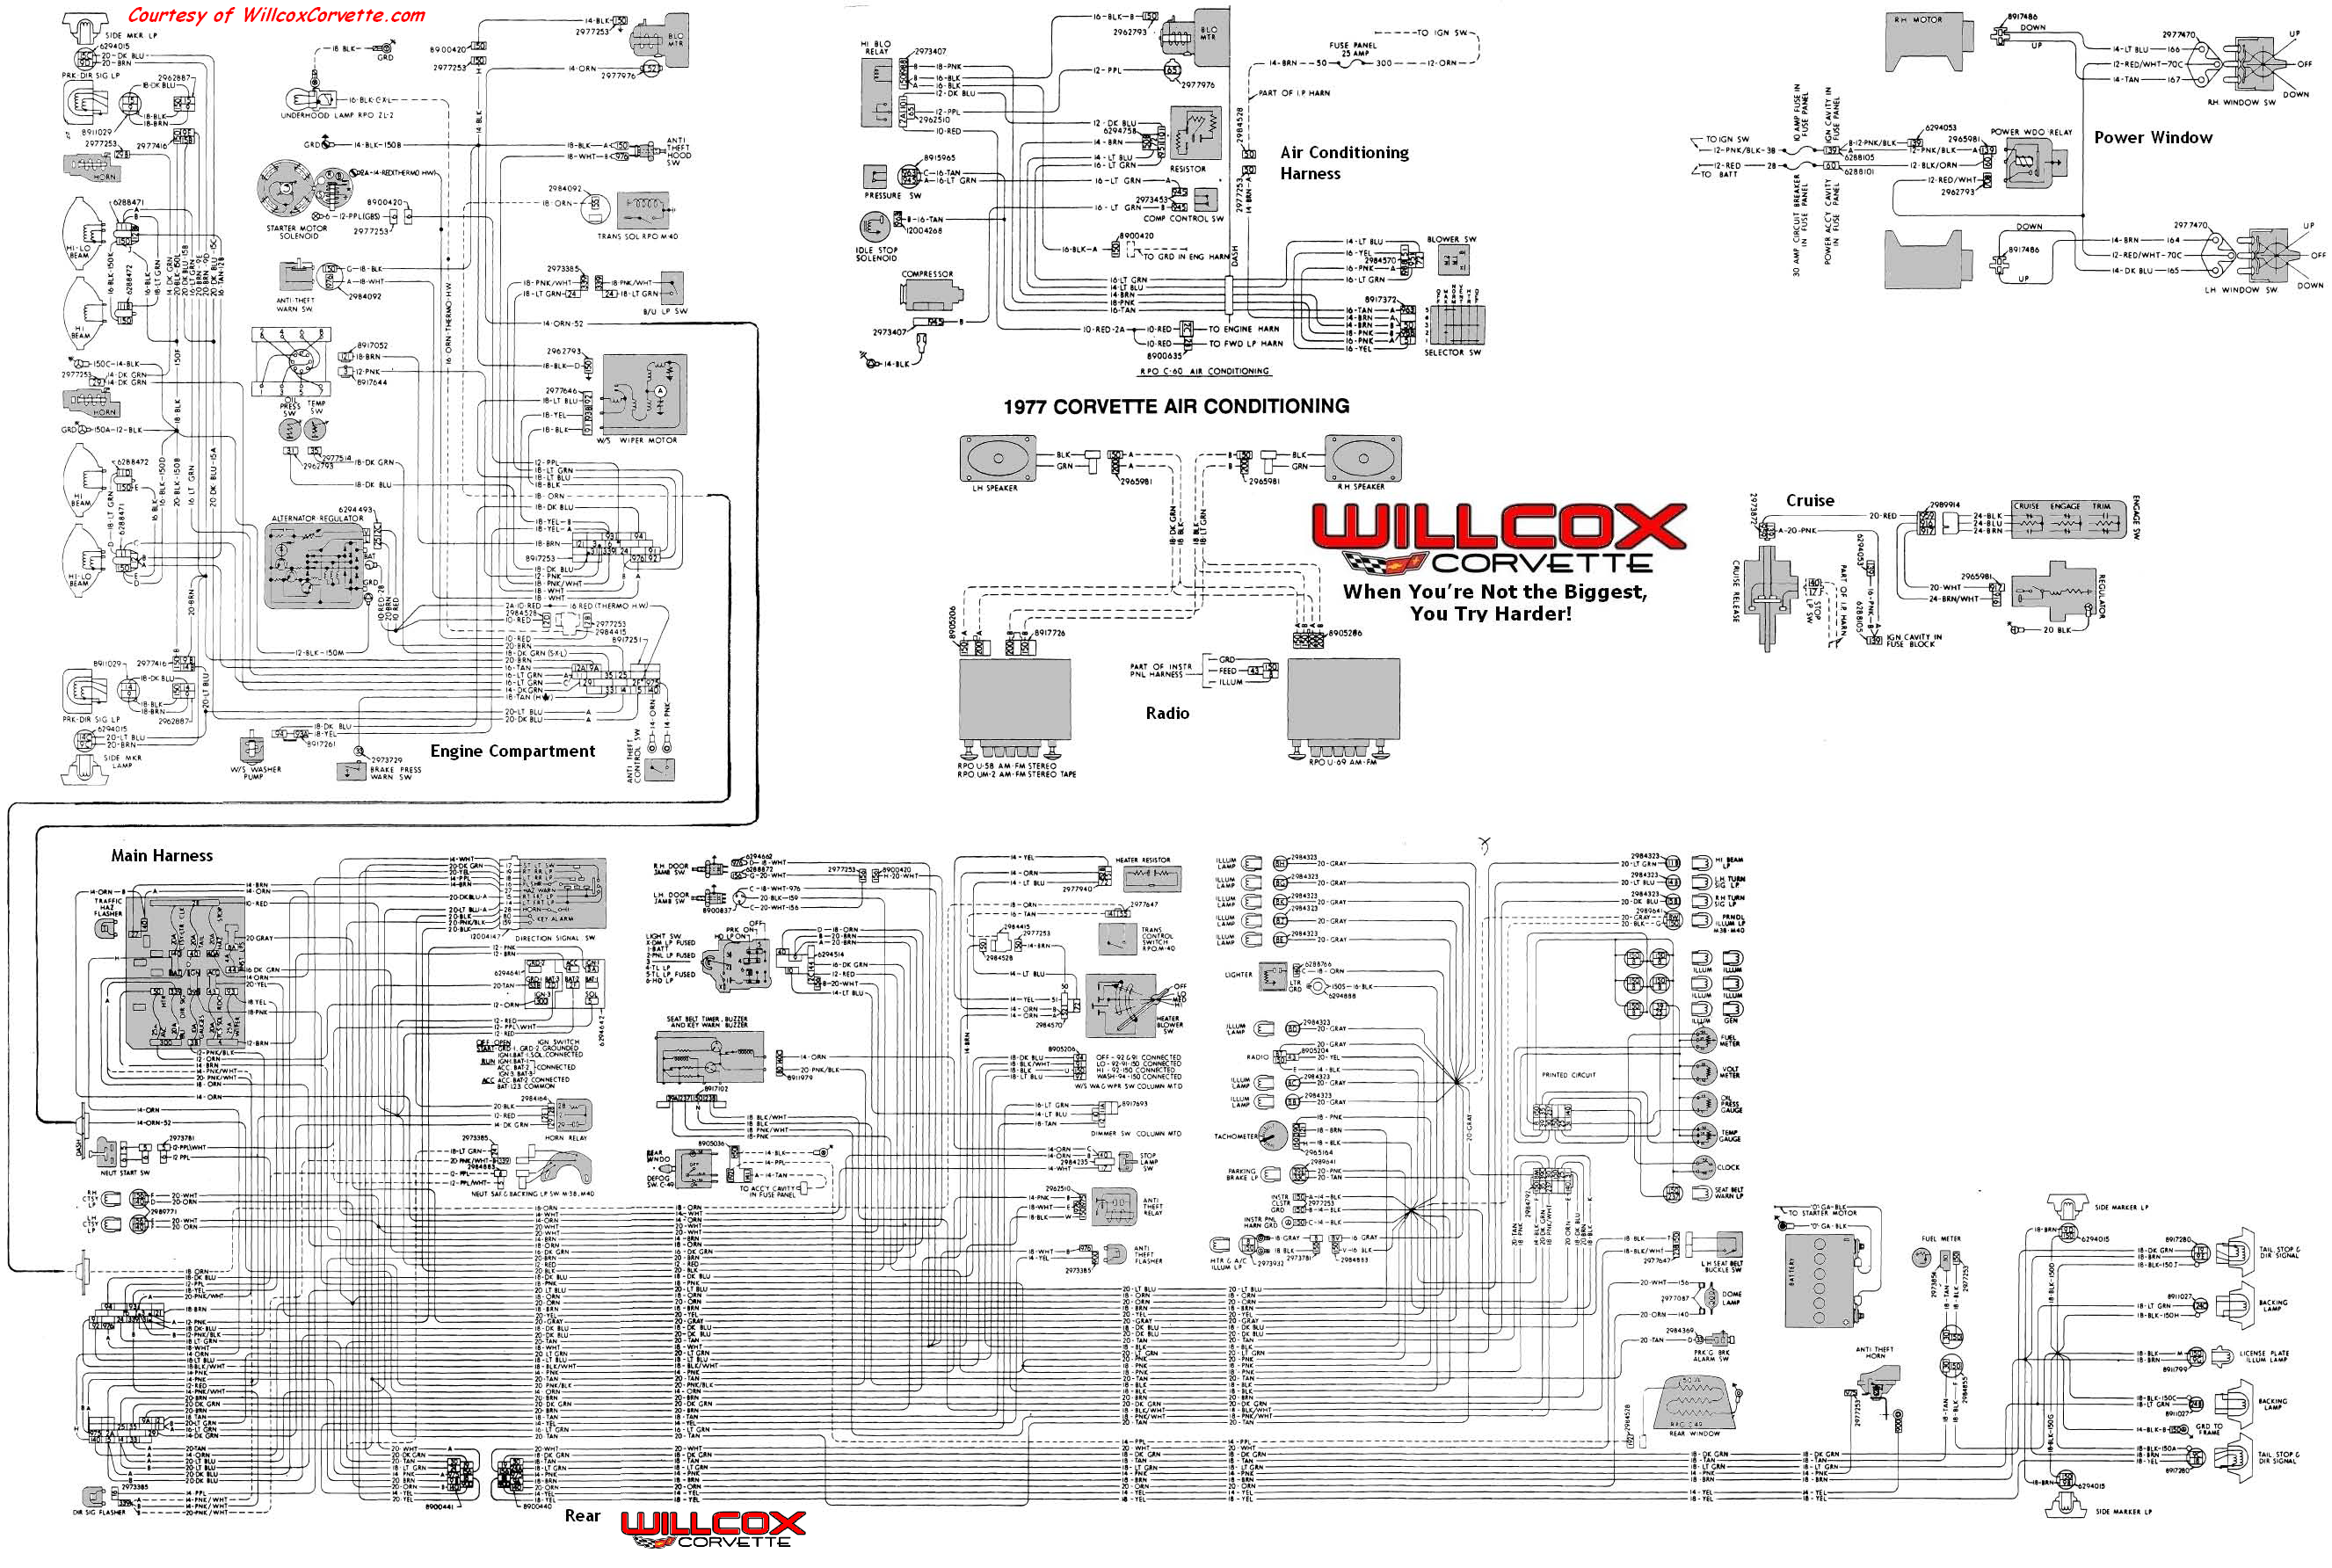 77 corvette wire schematic tracer 1975 corvette wiper diagram 2013 corvette \u2022 wiring diagrams j corvette electrical diagrams at mifinder.co